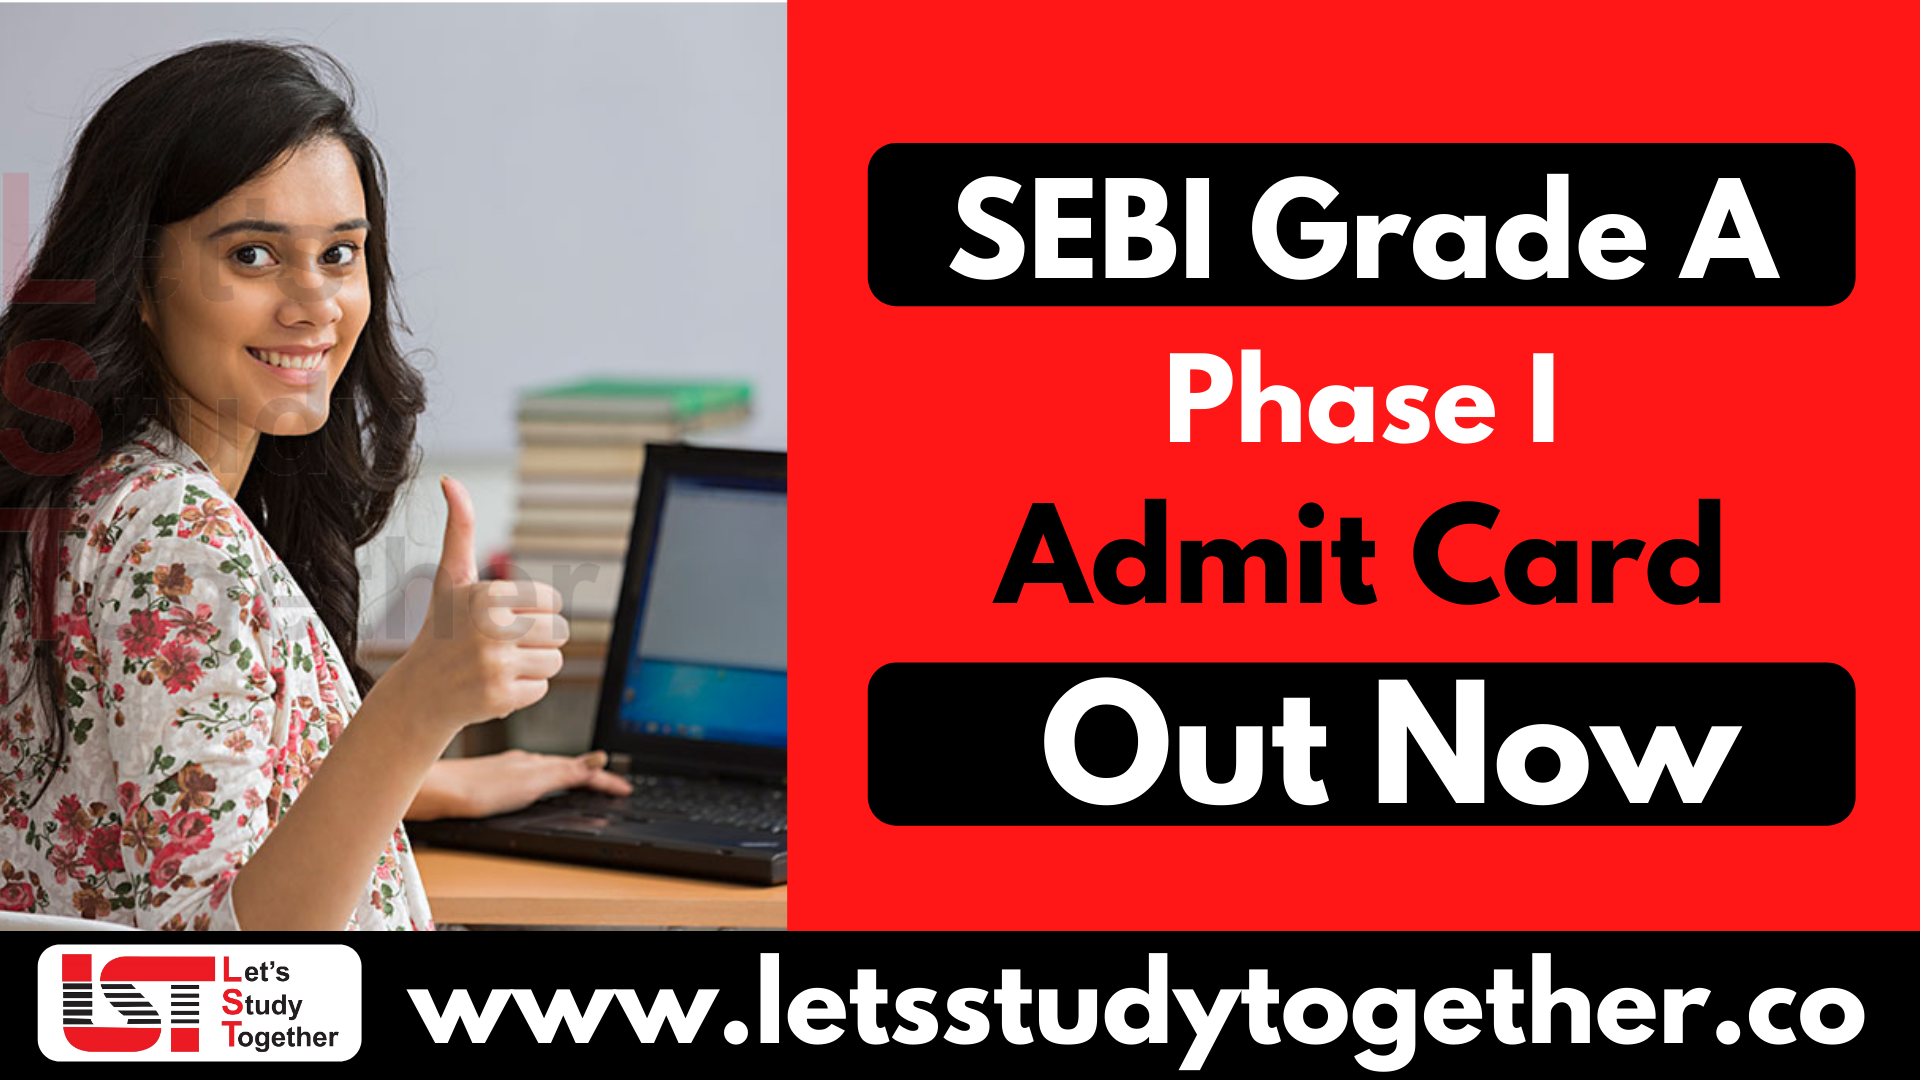 SEBI Grade A 2020 Admit Card - Phase 1 Admit Card Out Now